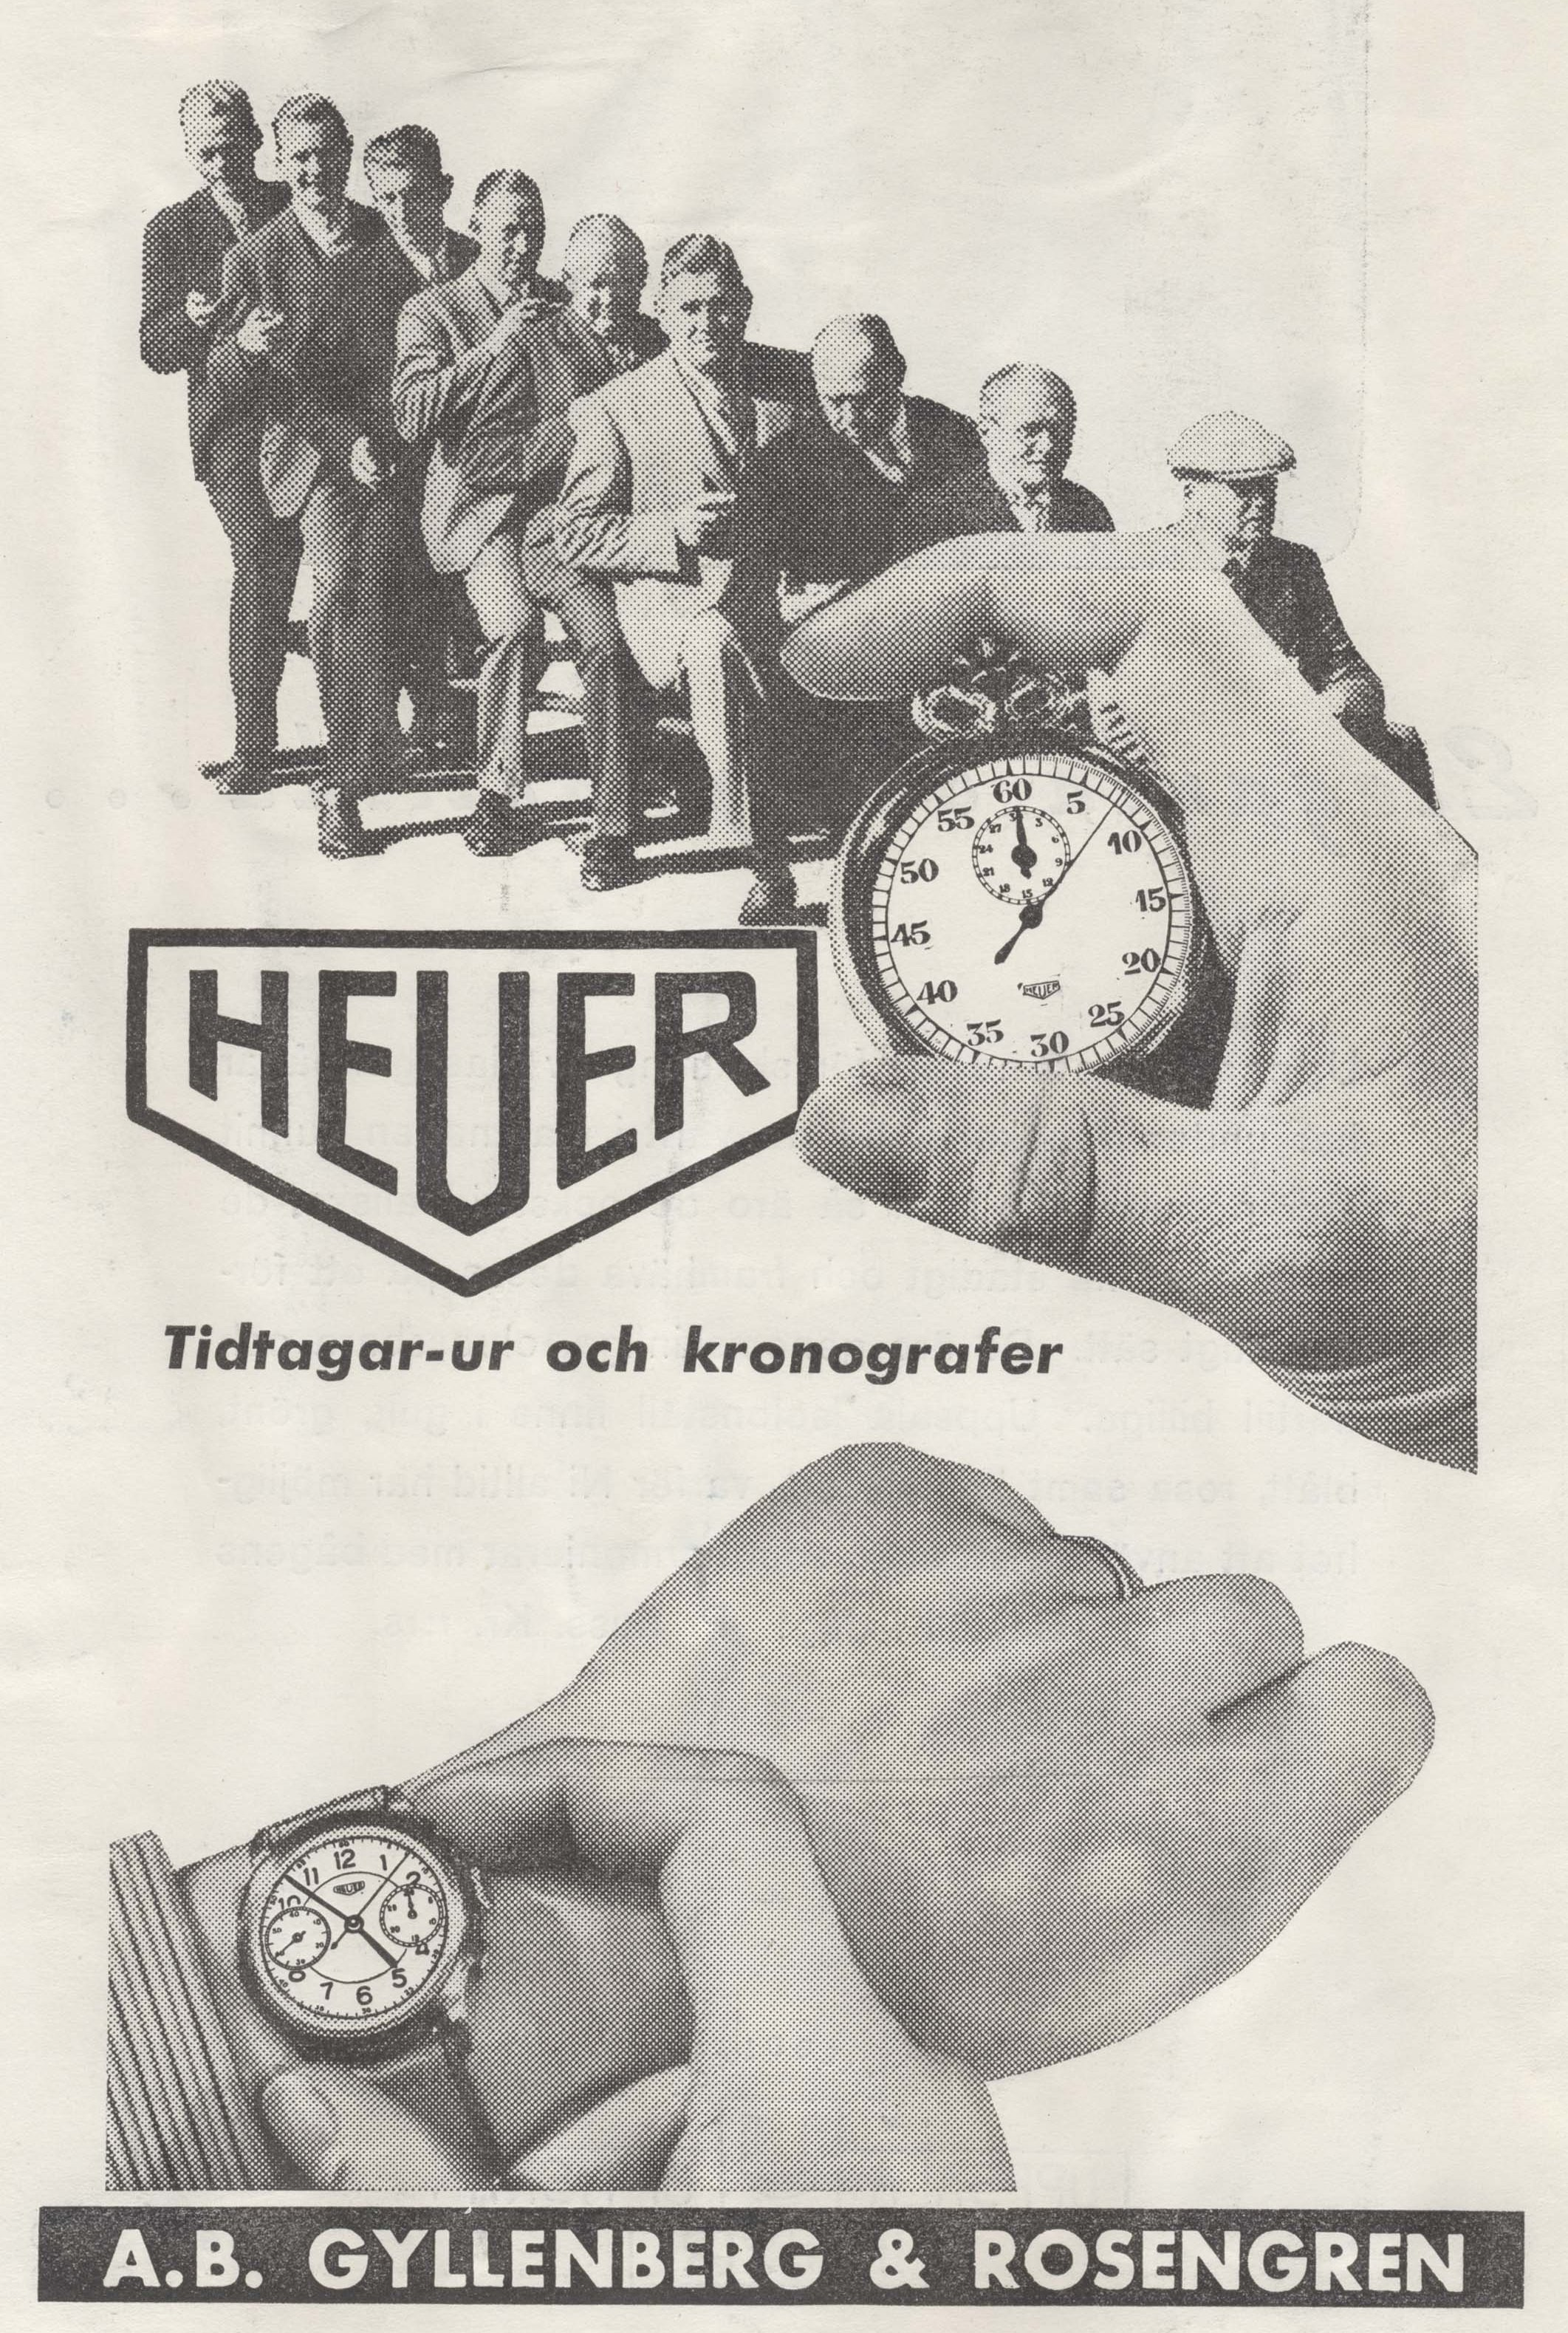 A Heuer advertisement from 1941